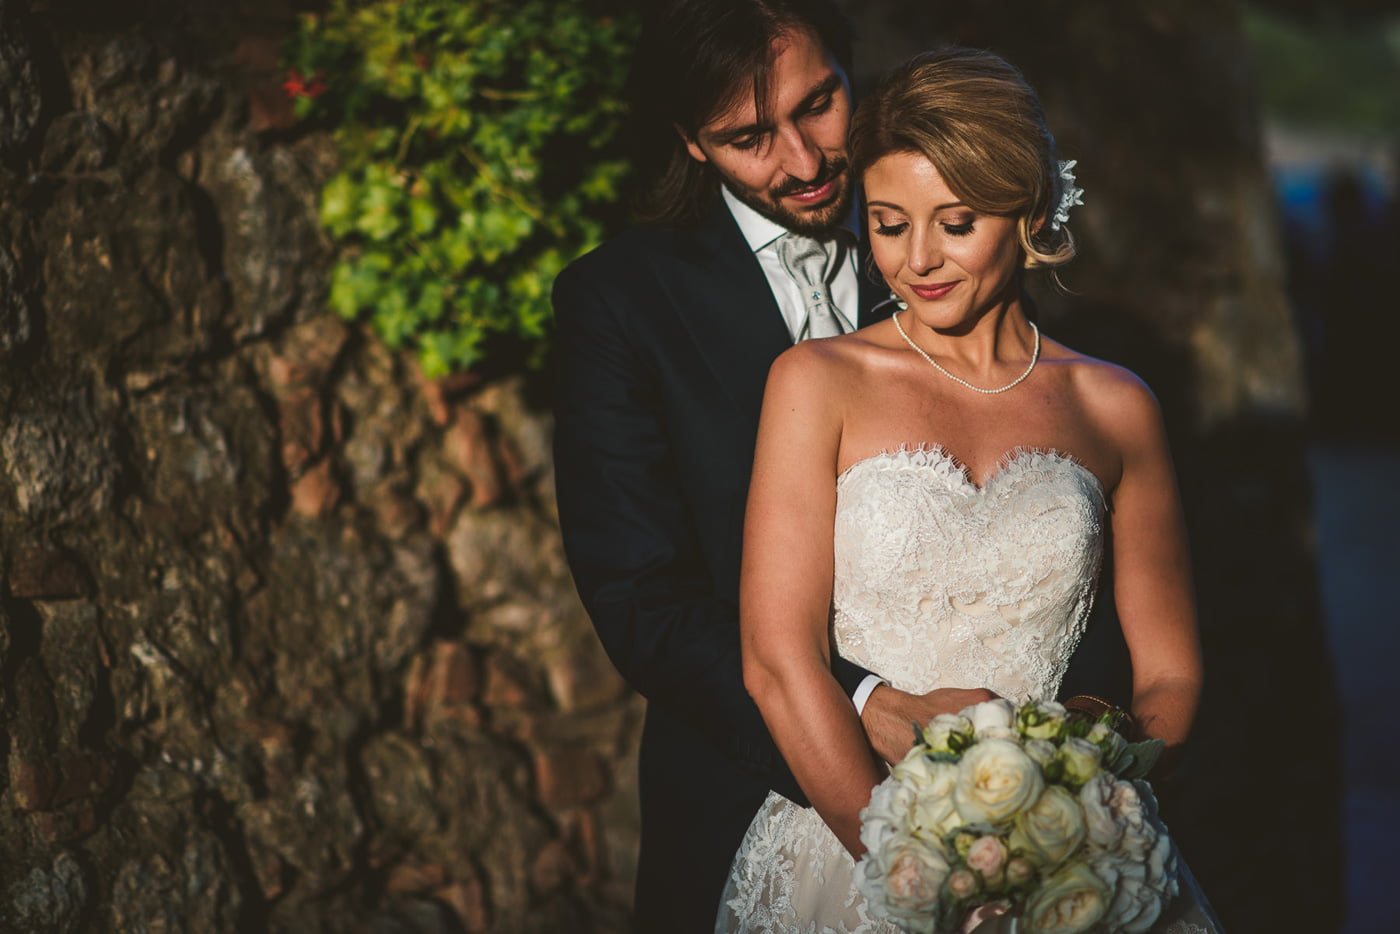 Andrea & Francesca | Wedding at Borgo San Luigi by Federico Pannacci 64